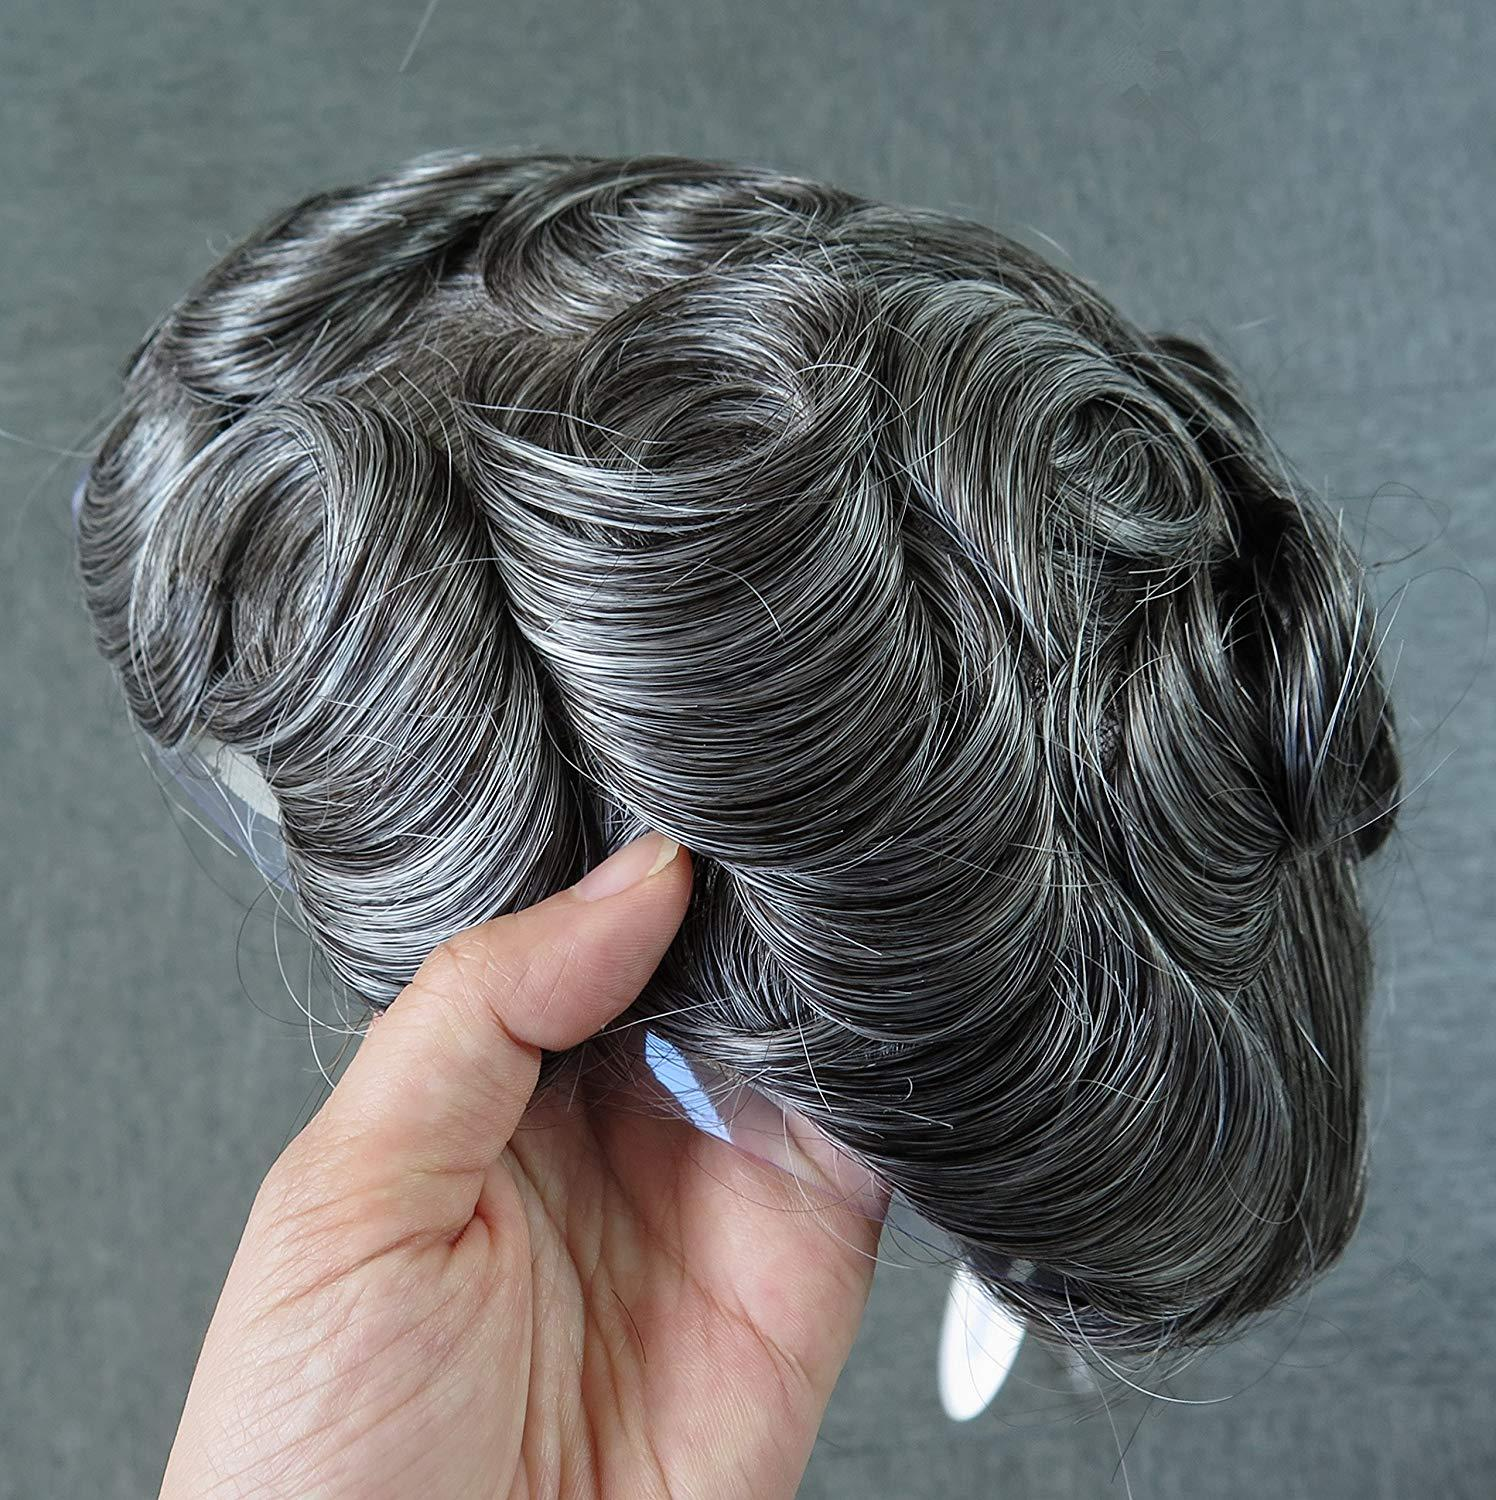 100% Human Hair Mens Fine Swiss Lace Toupee Hair Piece Hair Replacement System Human Grey #1B65